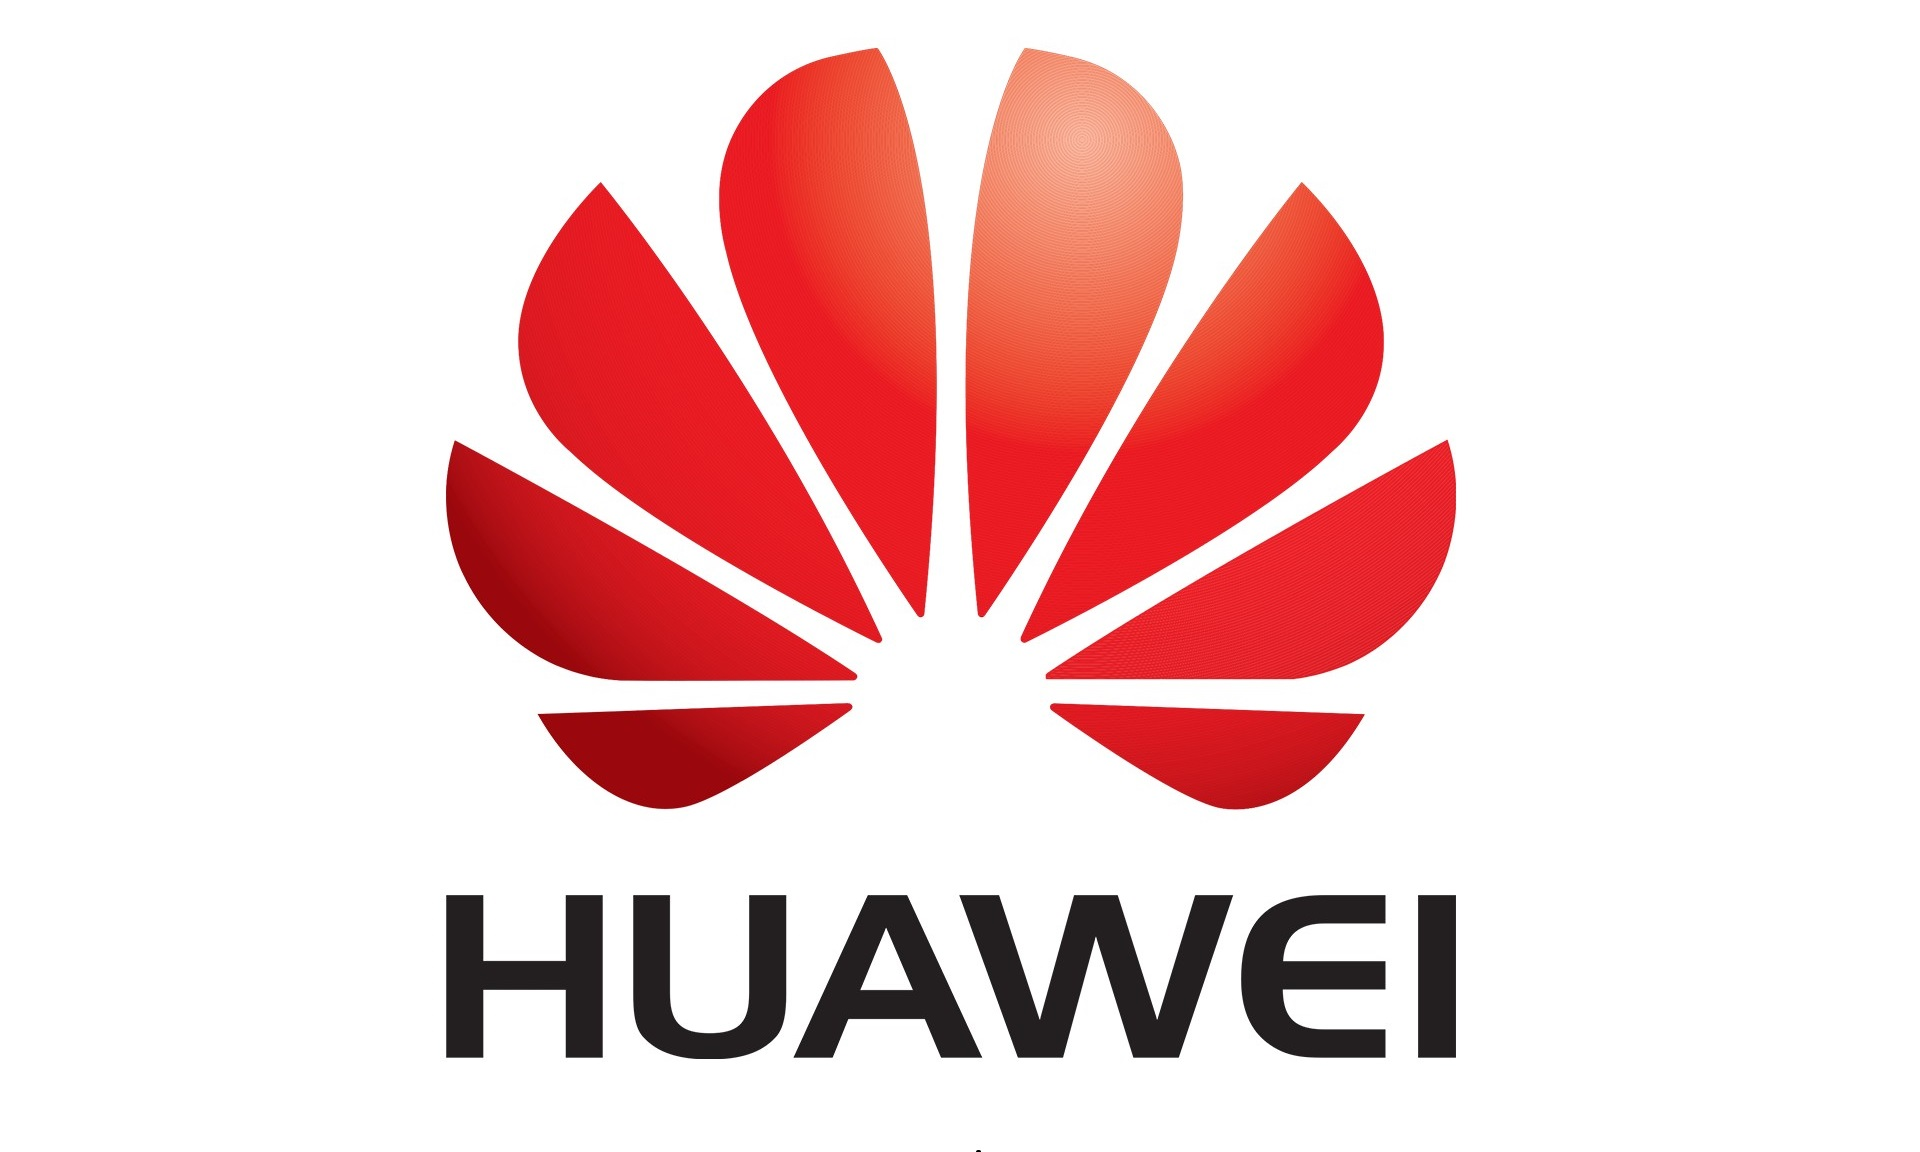 Huawei's R&D lab near its new campus in Dongguan, China is on fire